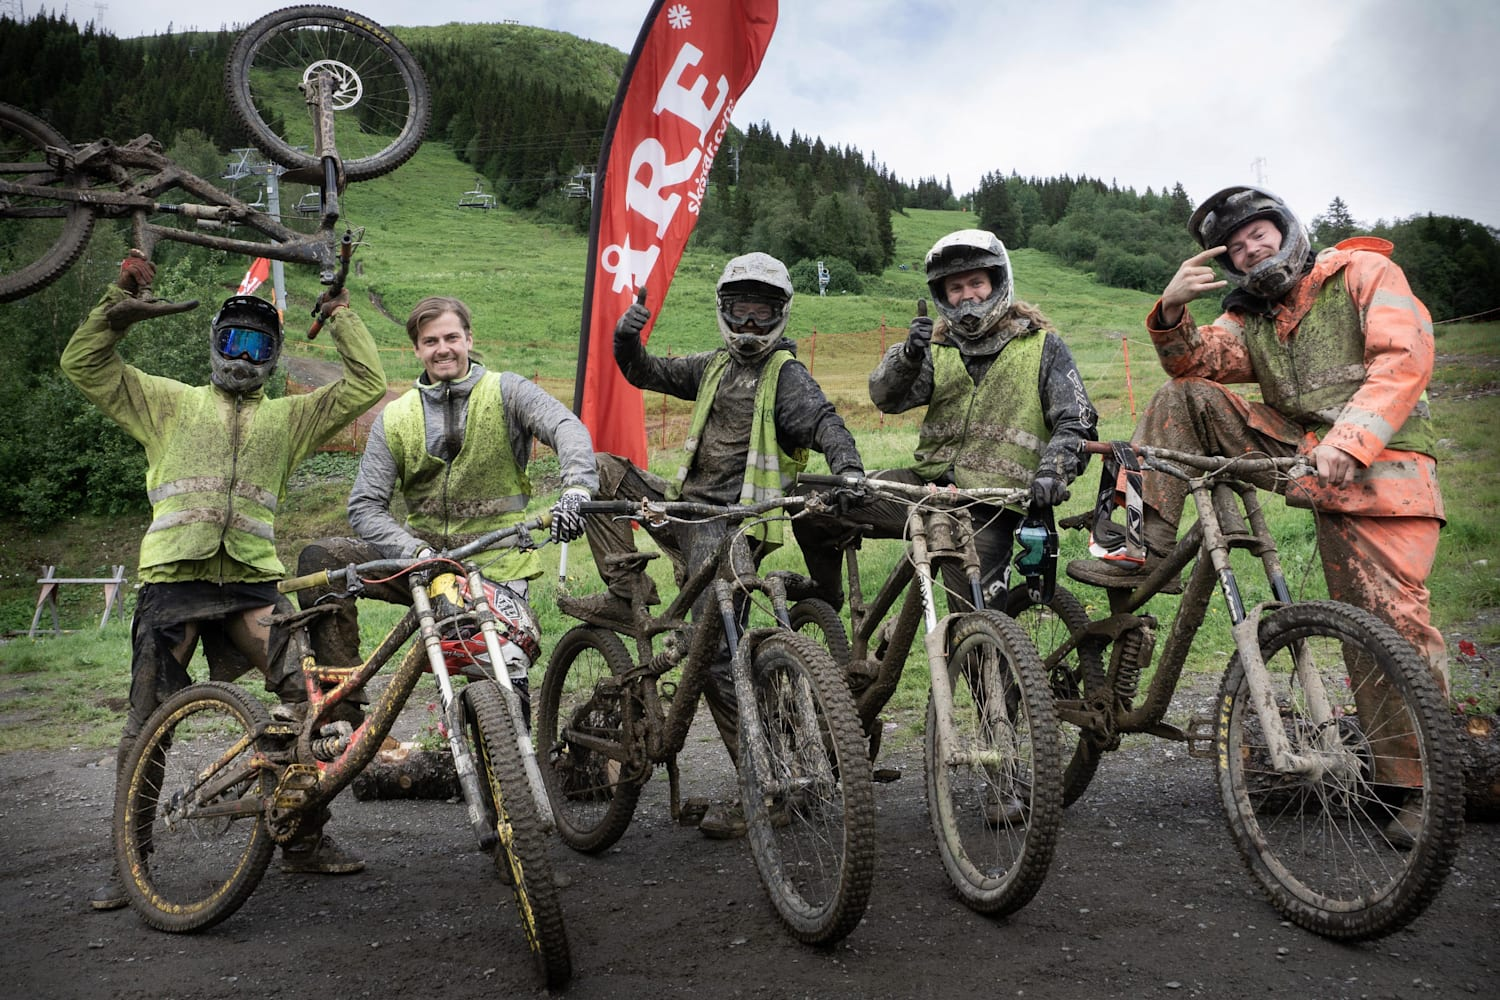 8 Reasons You Should Hit The Bike Park In The Rain Besoin de conseils pro ? bike park in the rain